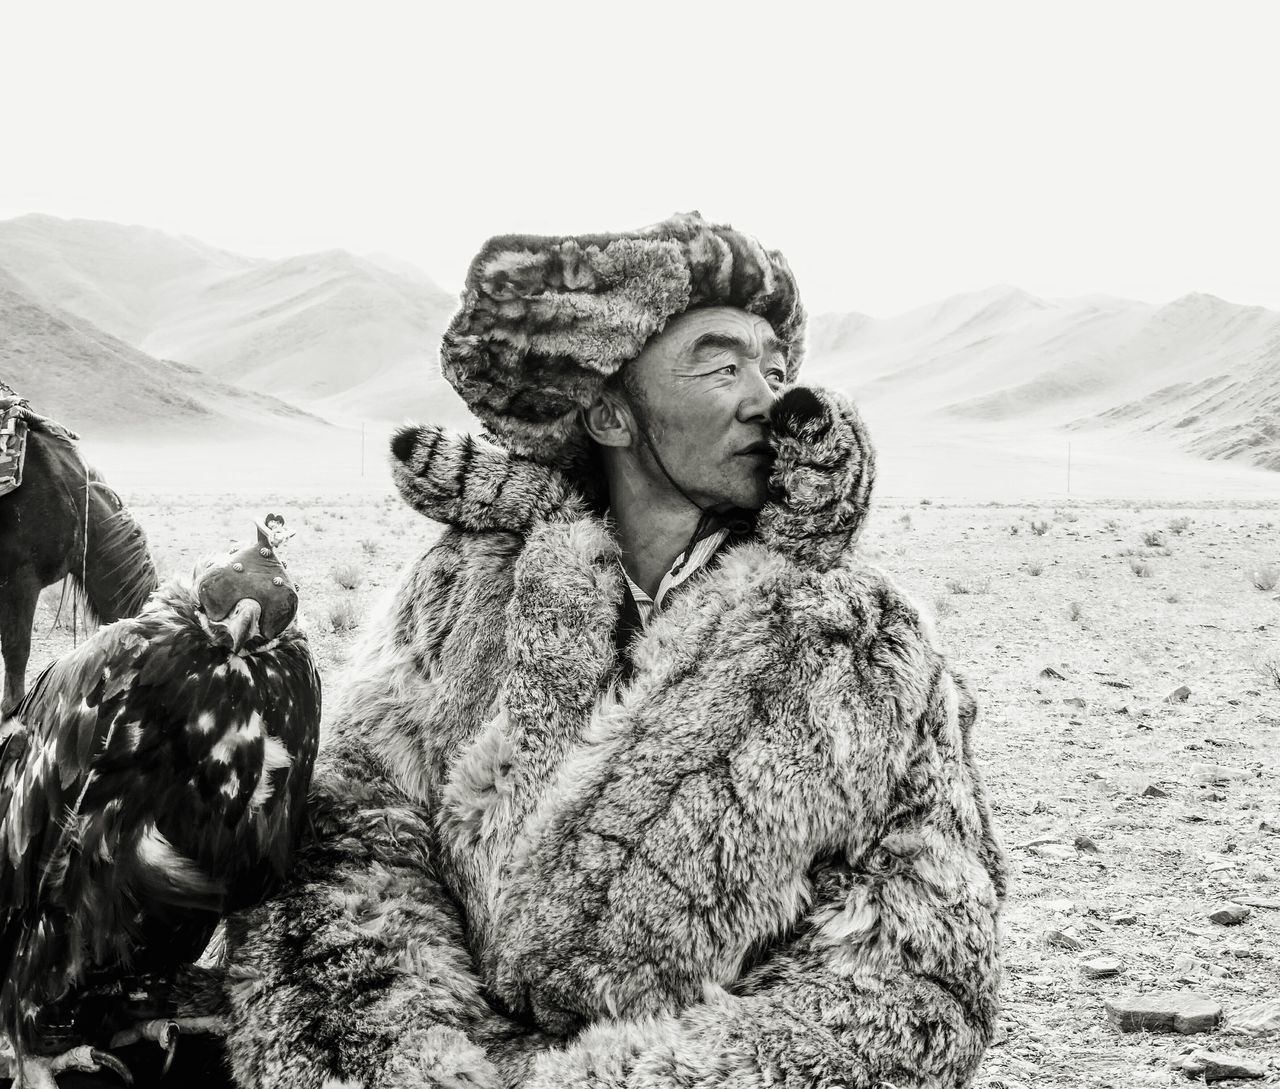 Eagle Mongolia Freedom Hunter Animals Bird Nature Culture Blackandwhite Black & White Blackandwhite Photography Wildlife Wildlife & Nature Portrait Human Fur Shades Of Grey Non-urban Scene Beauty In Nature Beauty My Favorite Photo